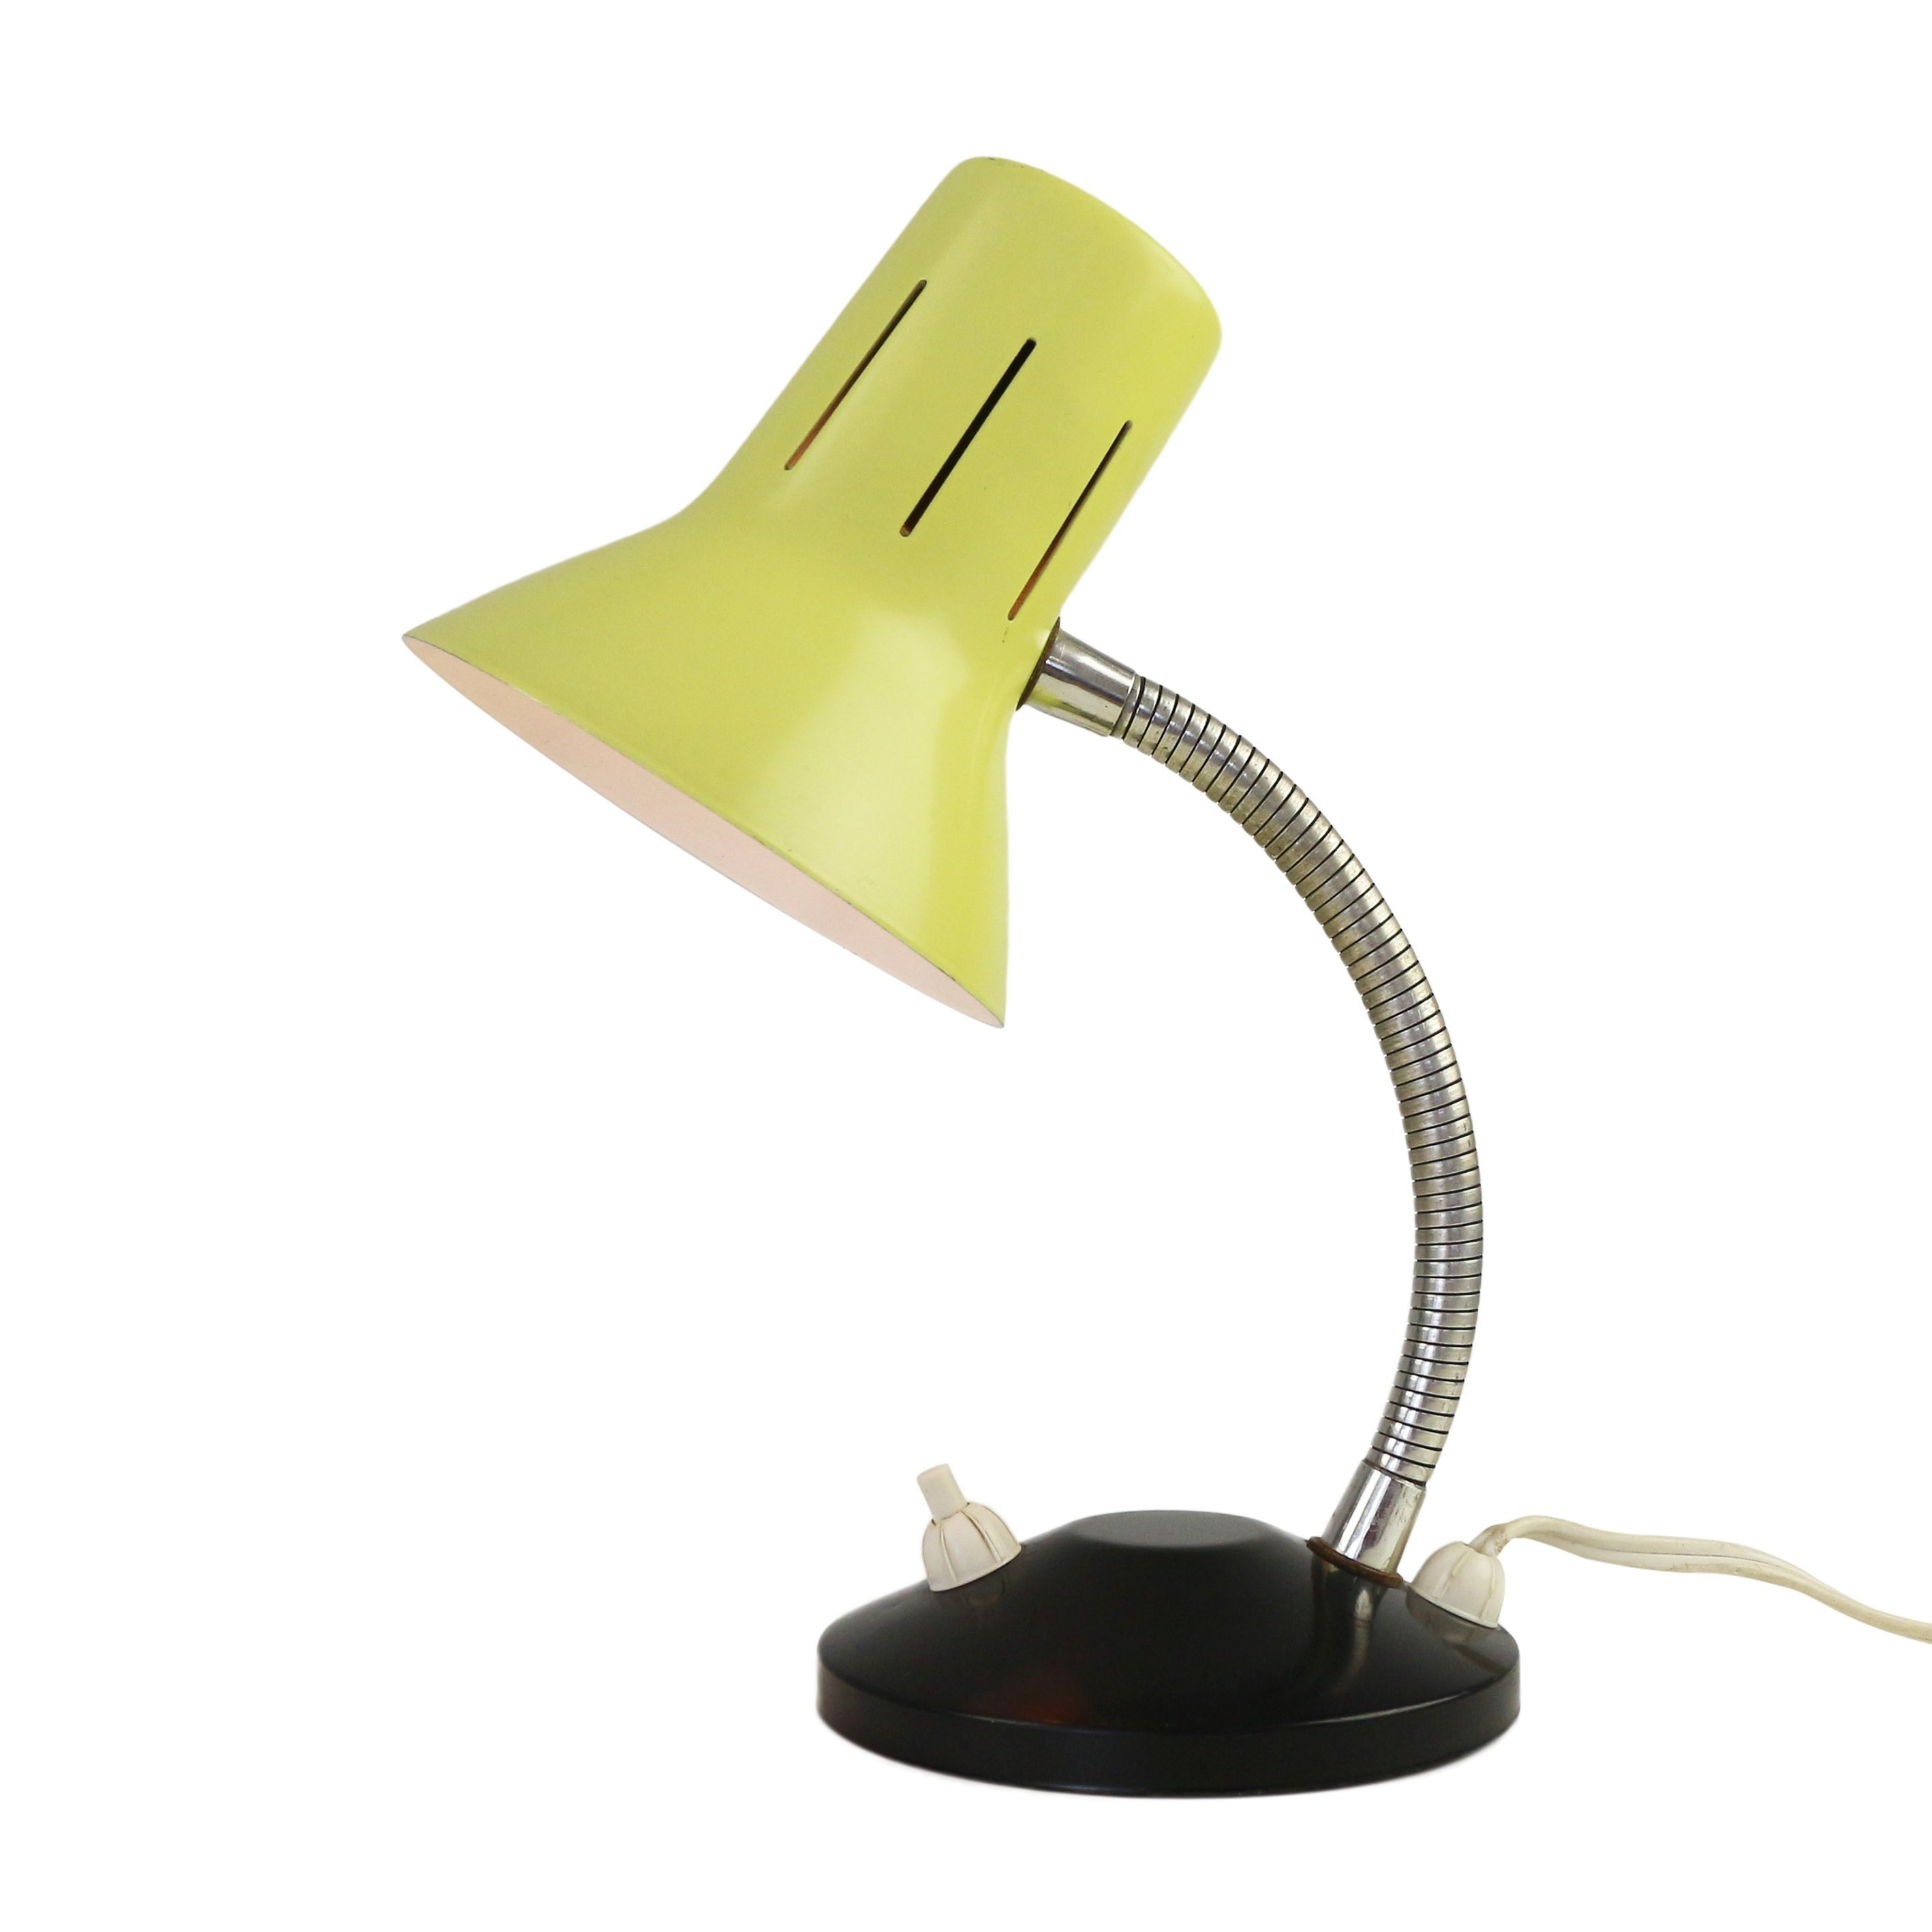 table yellow desk dandy lamp inspirations most silver unusual shade wall lamps